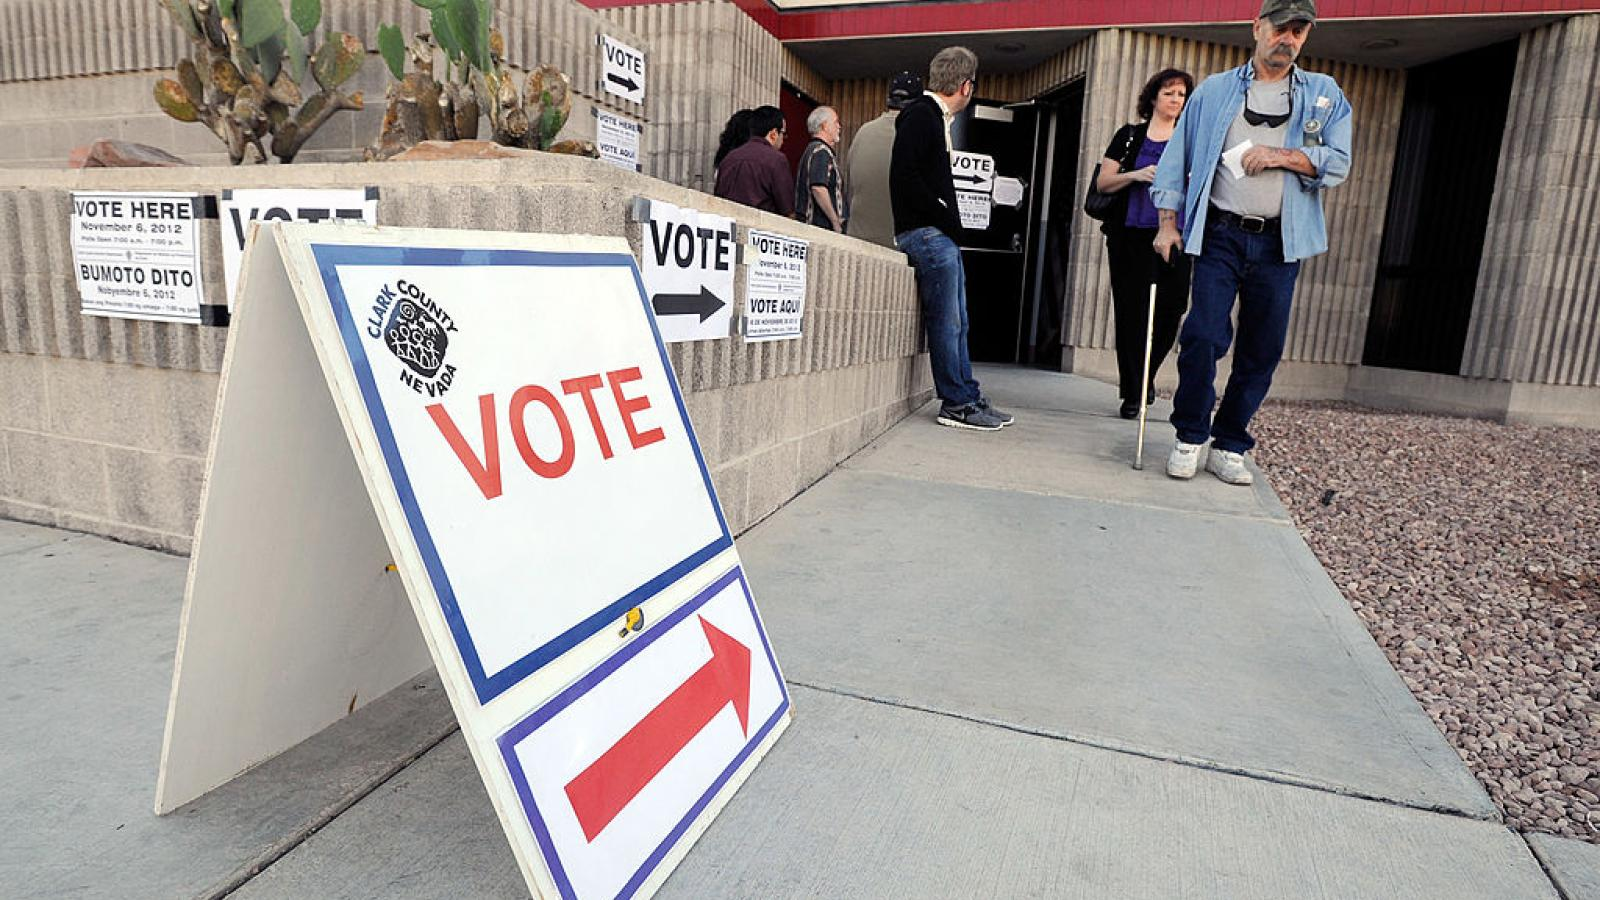 A polling station in Las Vegas, Nevada